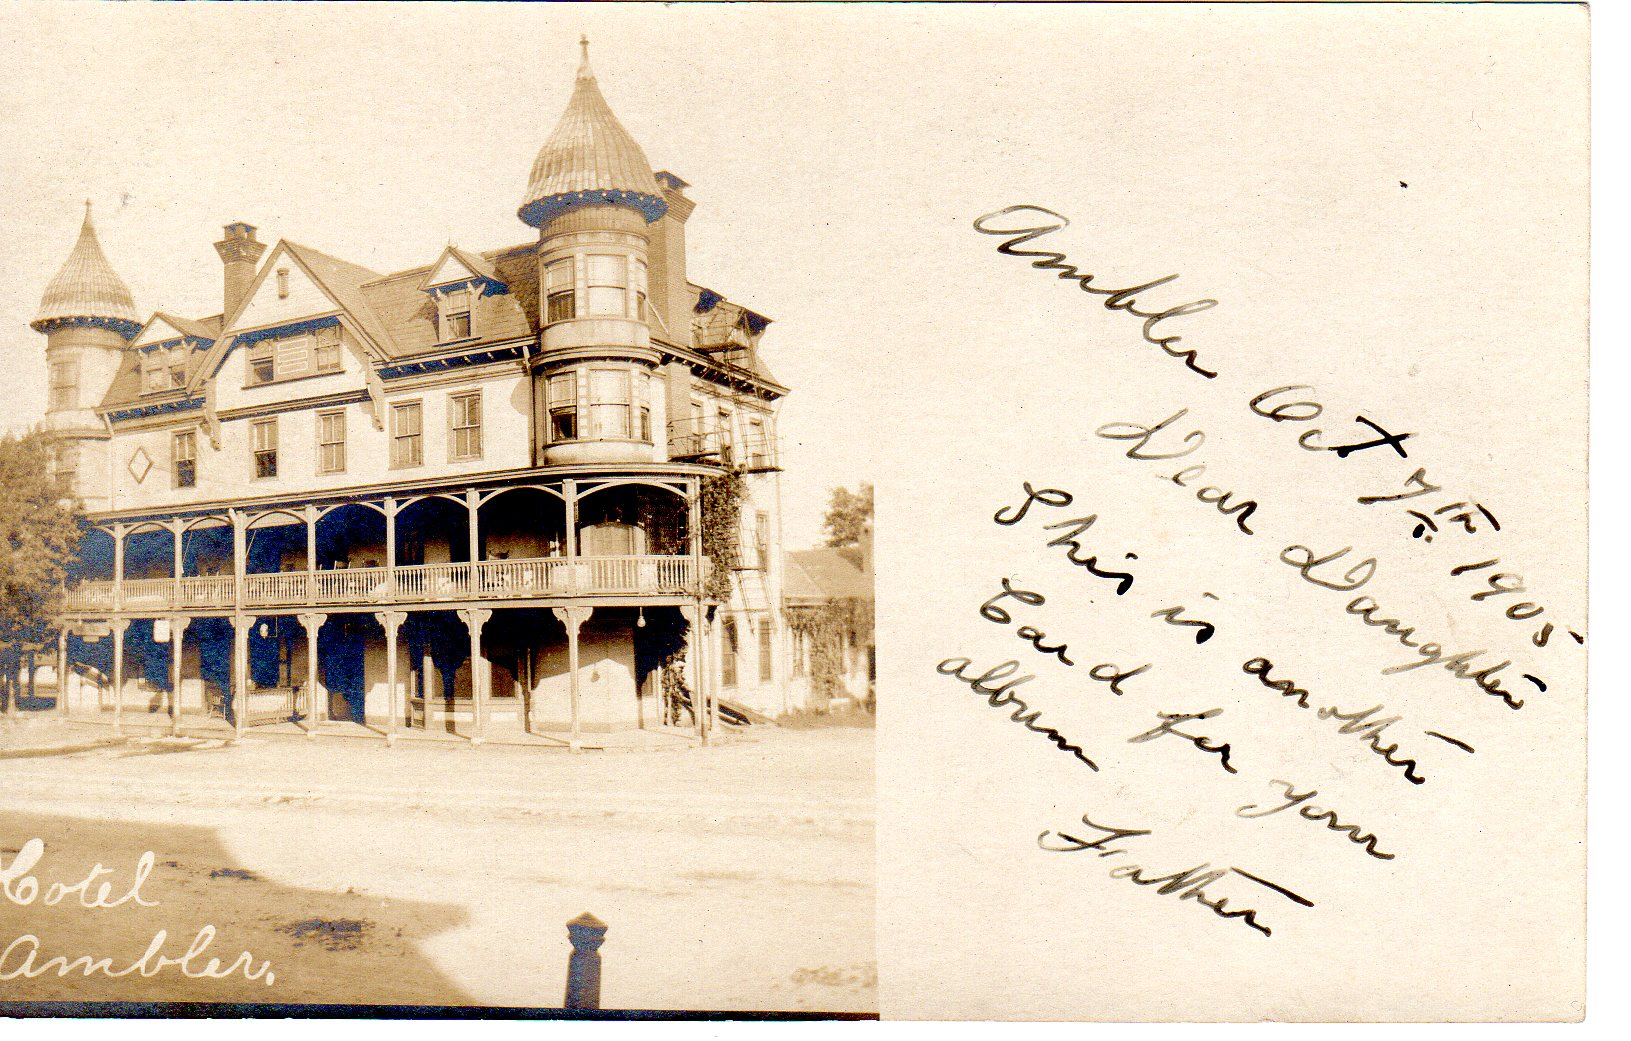 Post Card Collection (E Simon)_2682_06_Hotel Ambler_7 Oct 1905